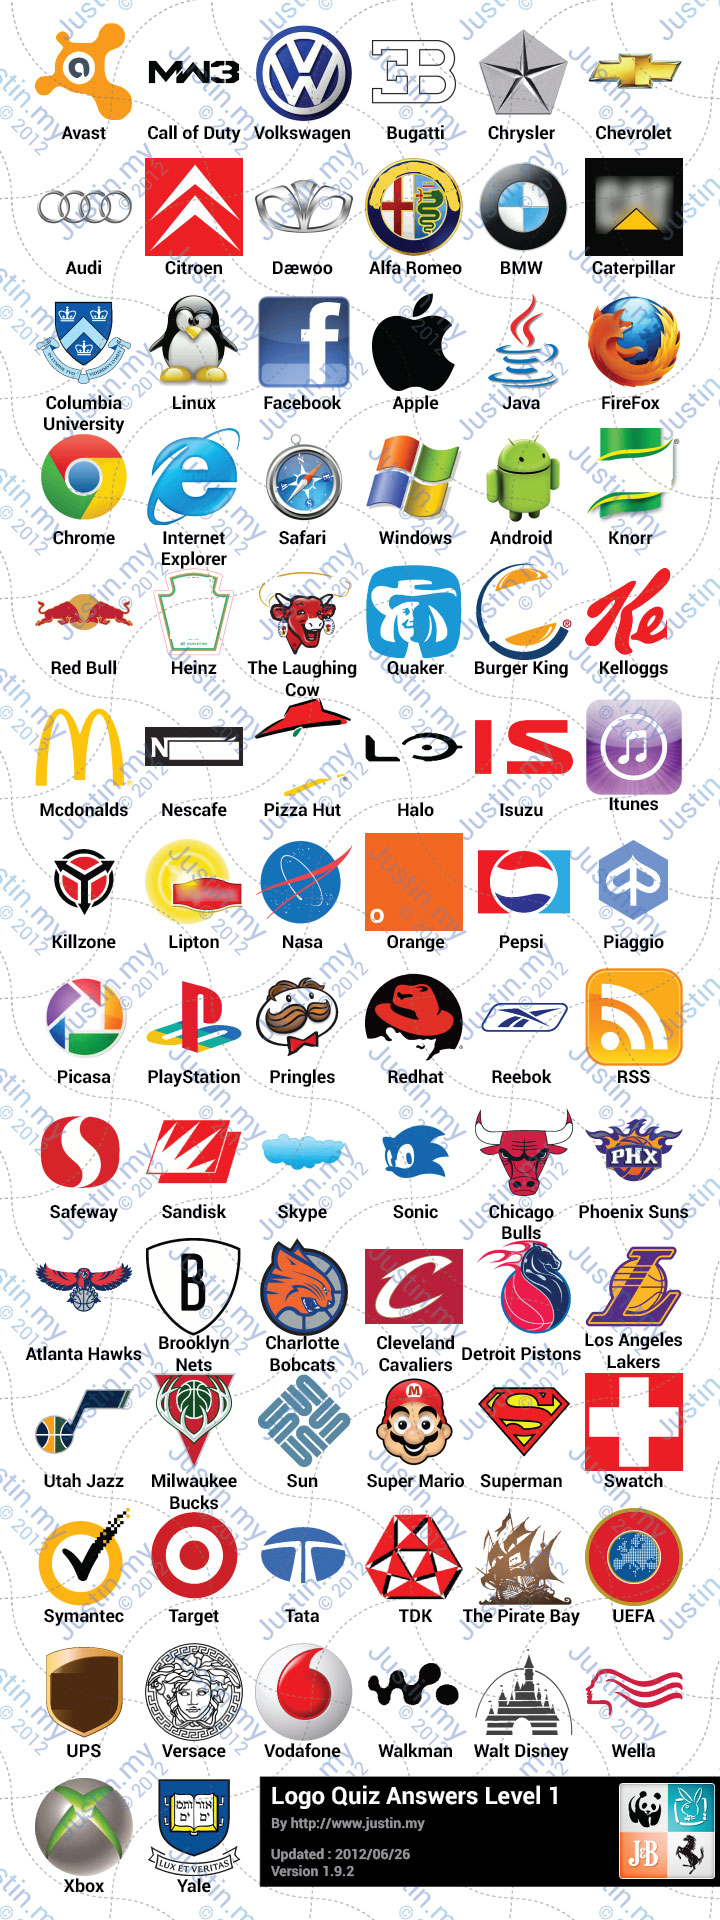 Restaurant Logos And Names Answers